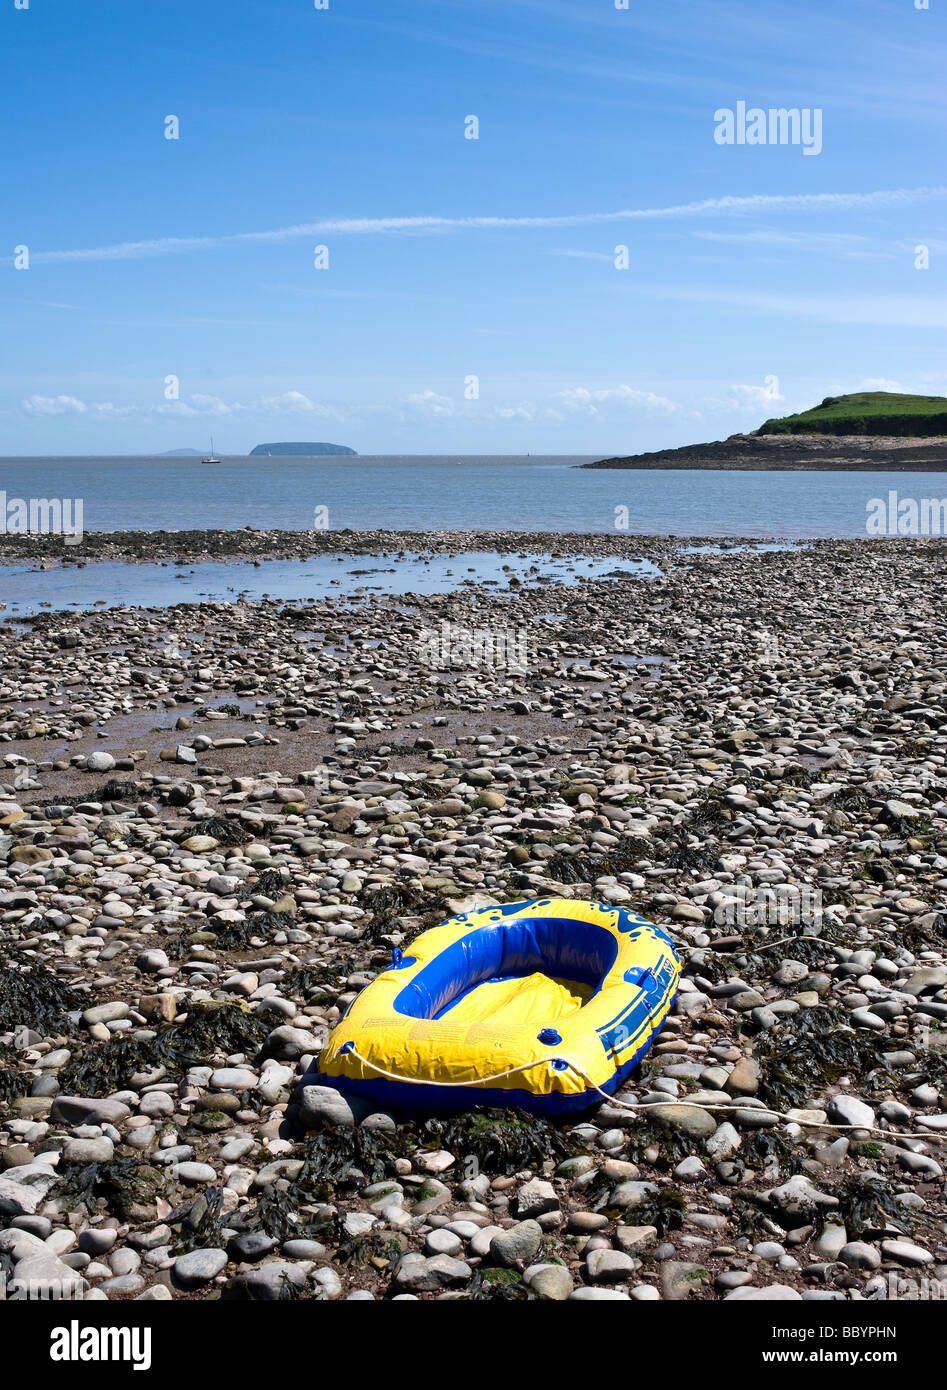 A punctured inflatable rubber dinghy abandoned on the pebble beach at Sully in South Wales. - Stock Image